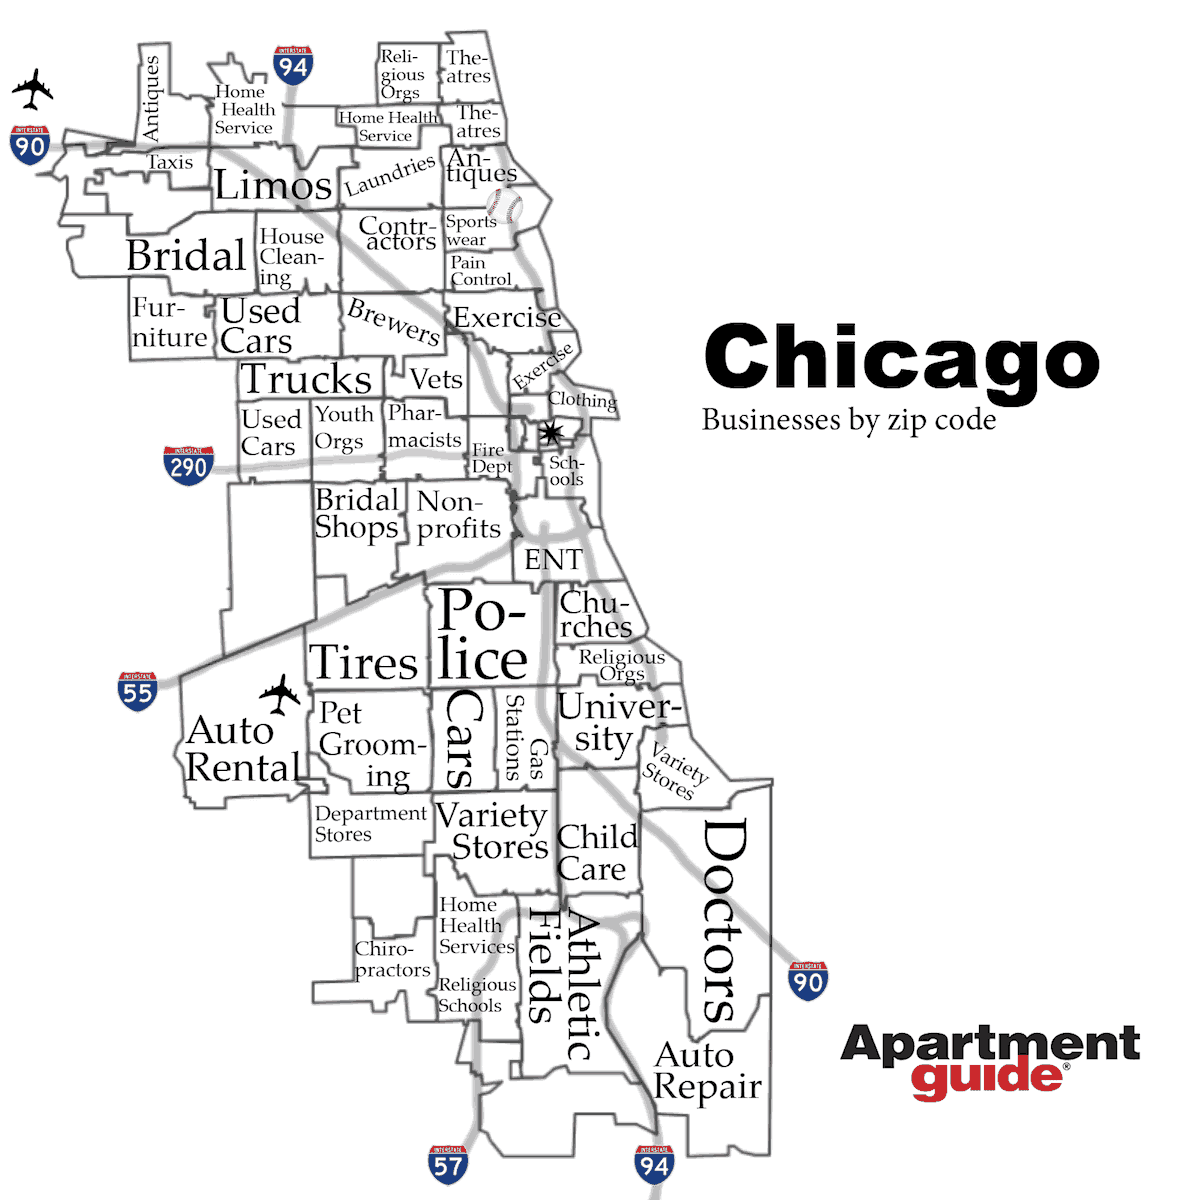 chicago businesses by zip code